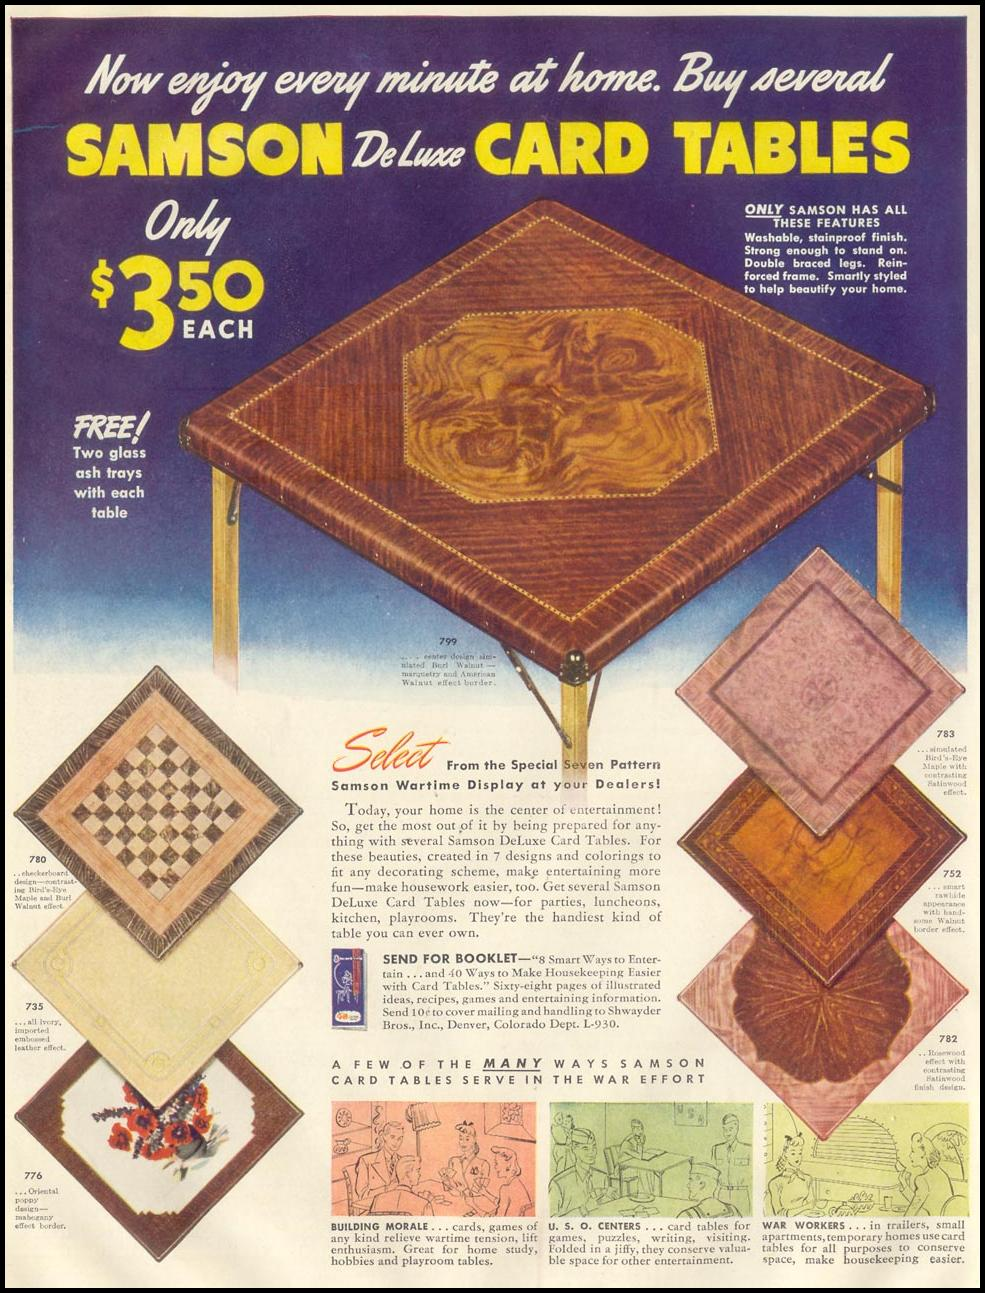 SAMSON DELUXE CARD TABLES LIFE 11/30/1942